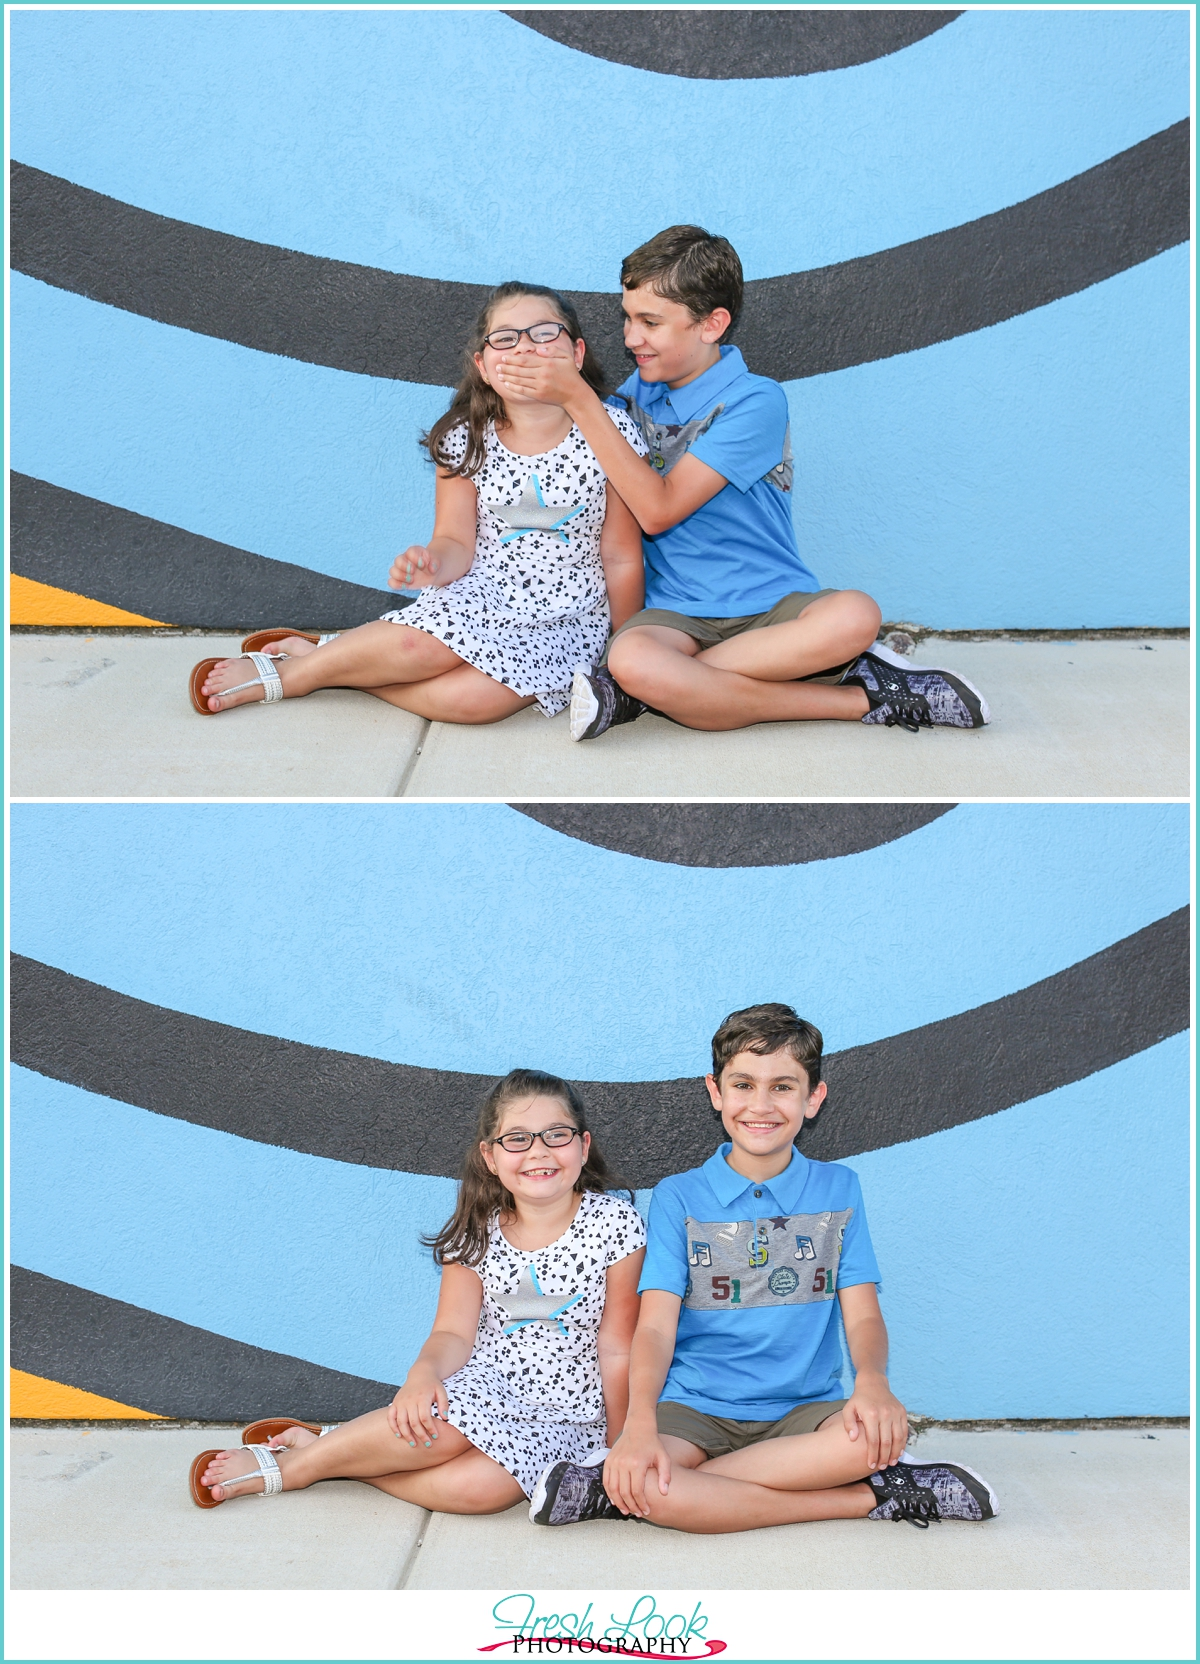 kids being silly together